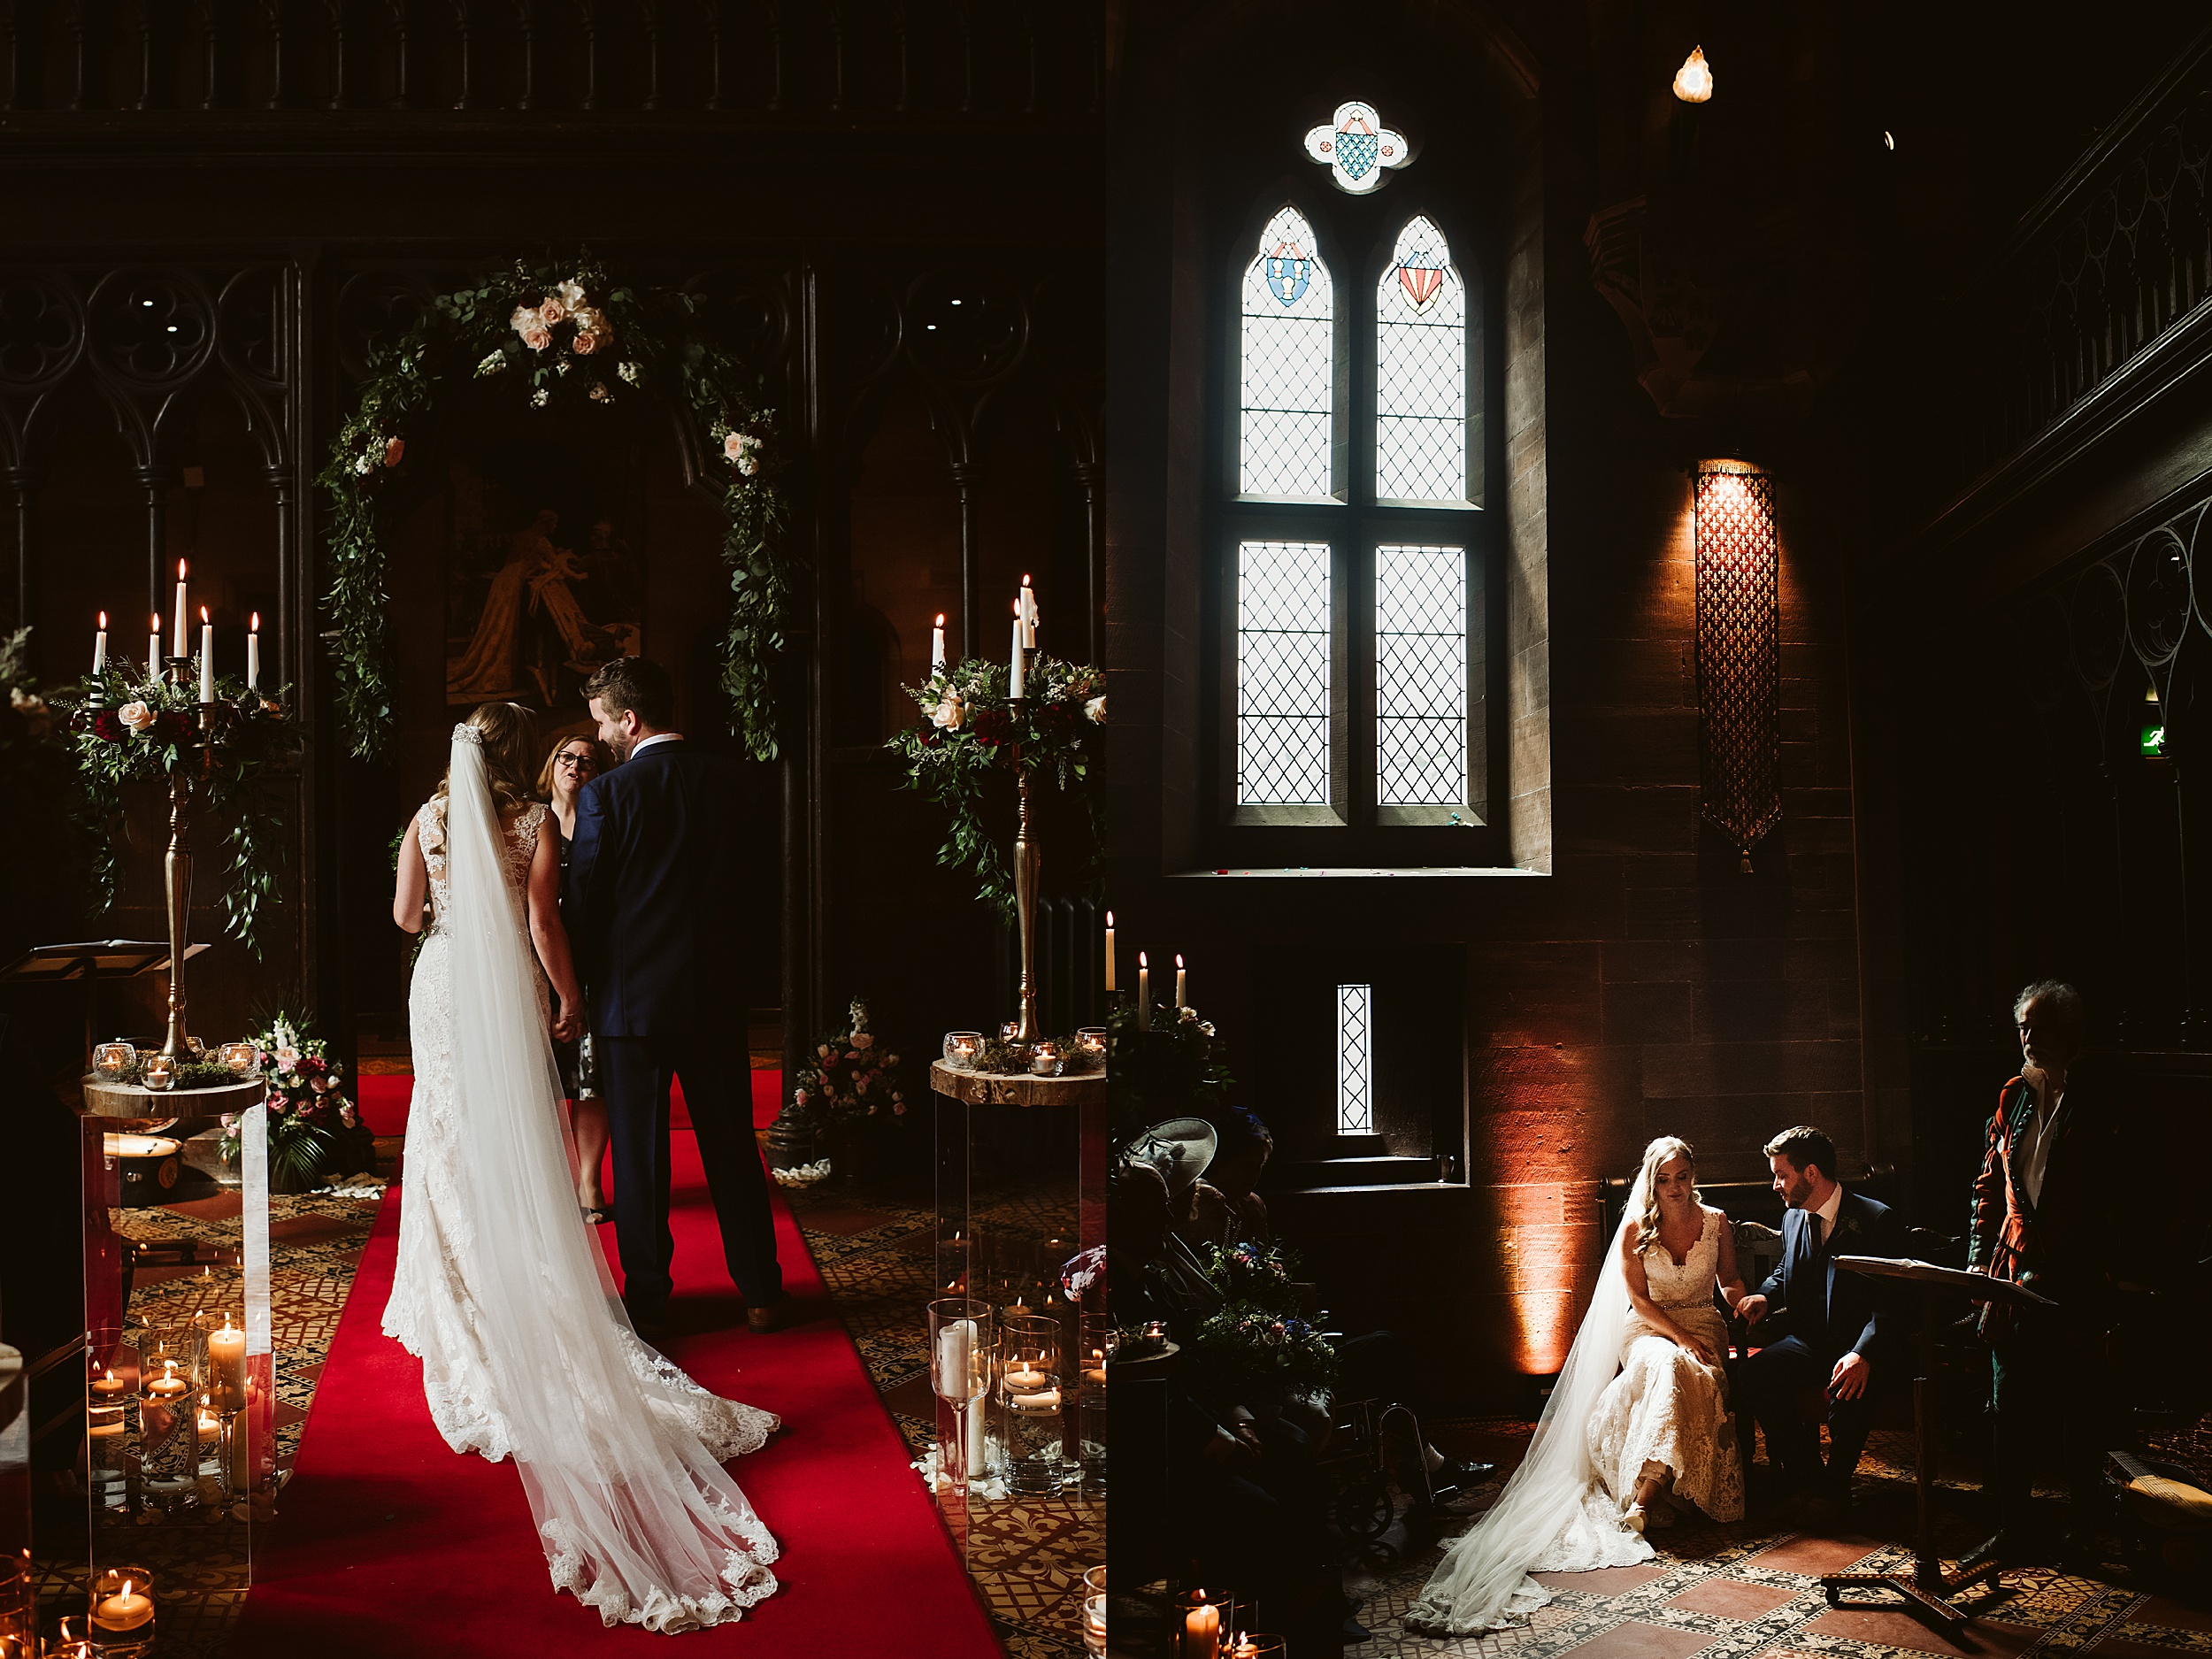 Peckforton_Castle_Cheshire_Toronto_Wedding_Photographer_UK_Destination_Wedding_0042.jpg